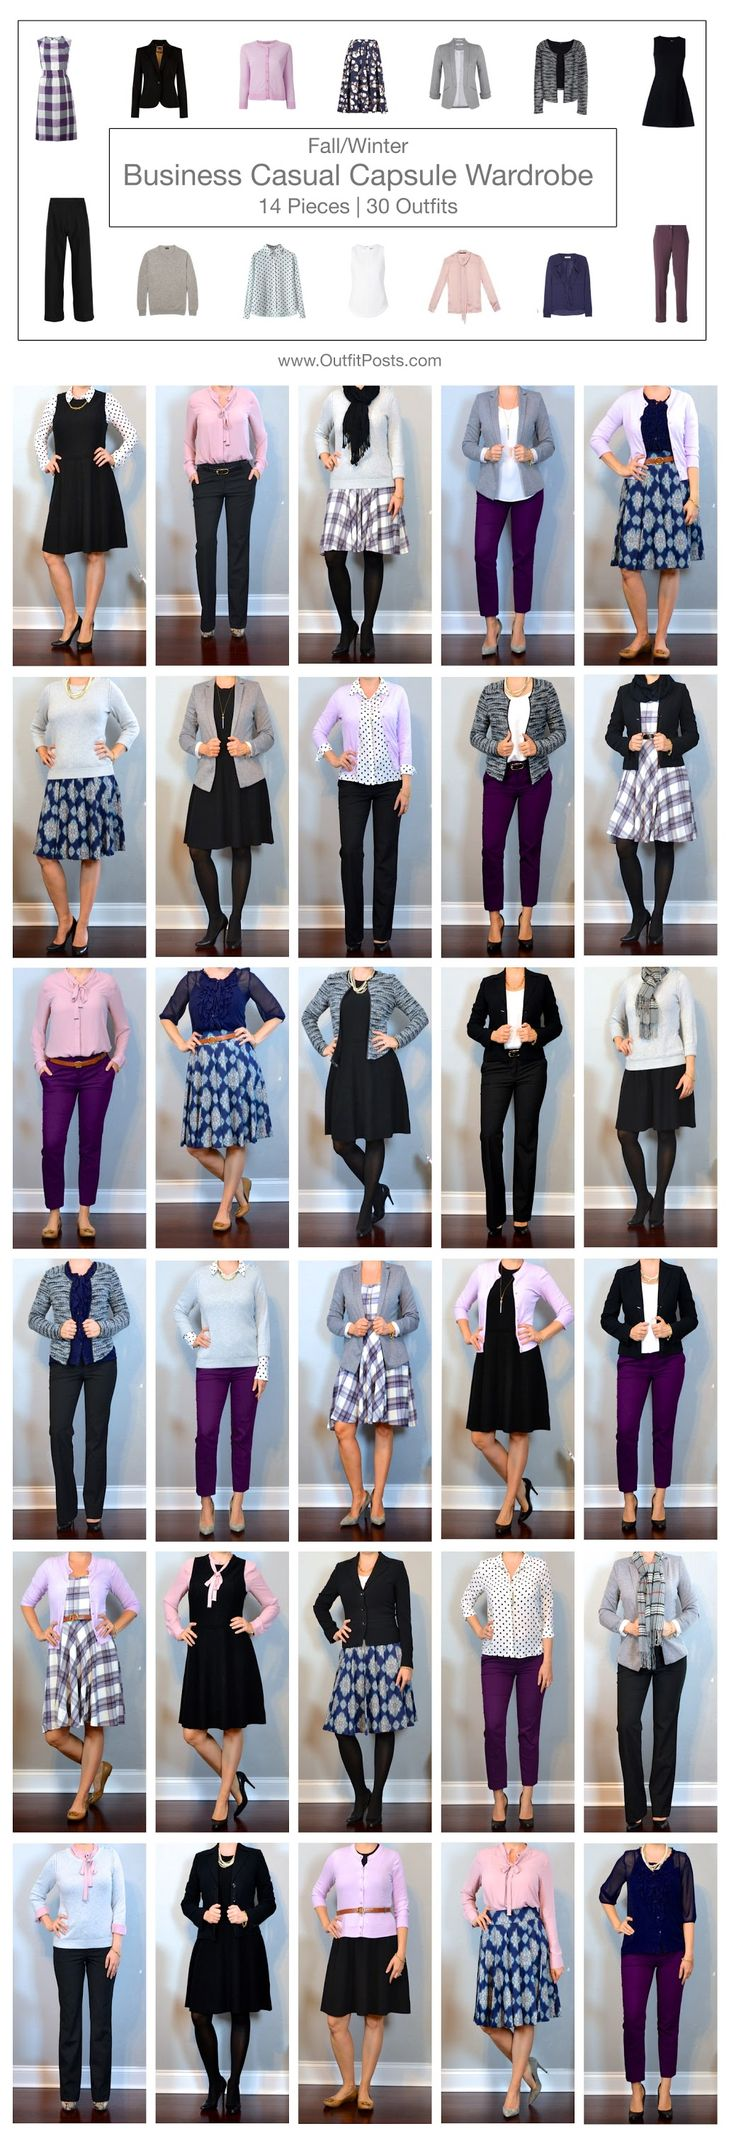 outfit post: fall/winter business casual capsule wardrobe – 14 pieces | 30 outfits